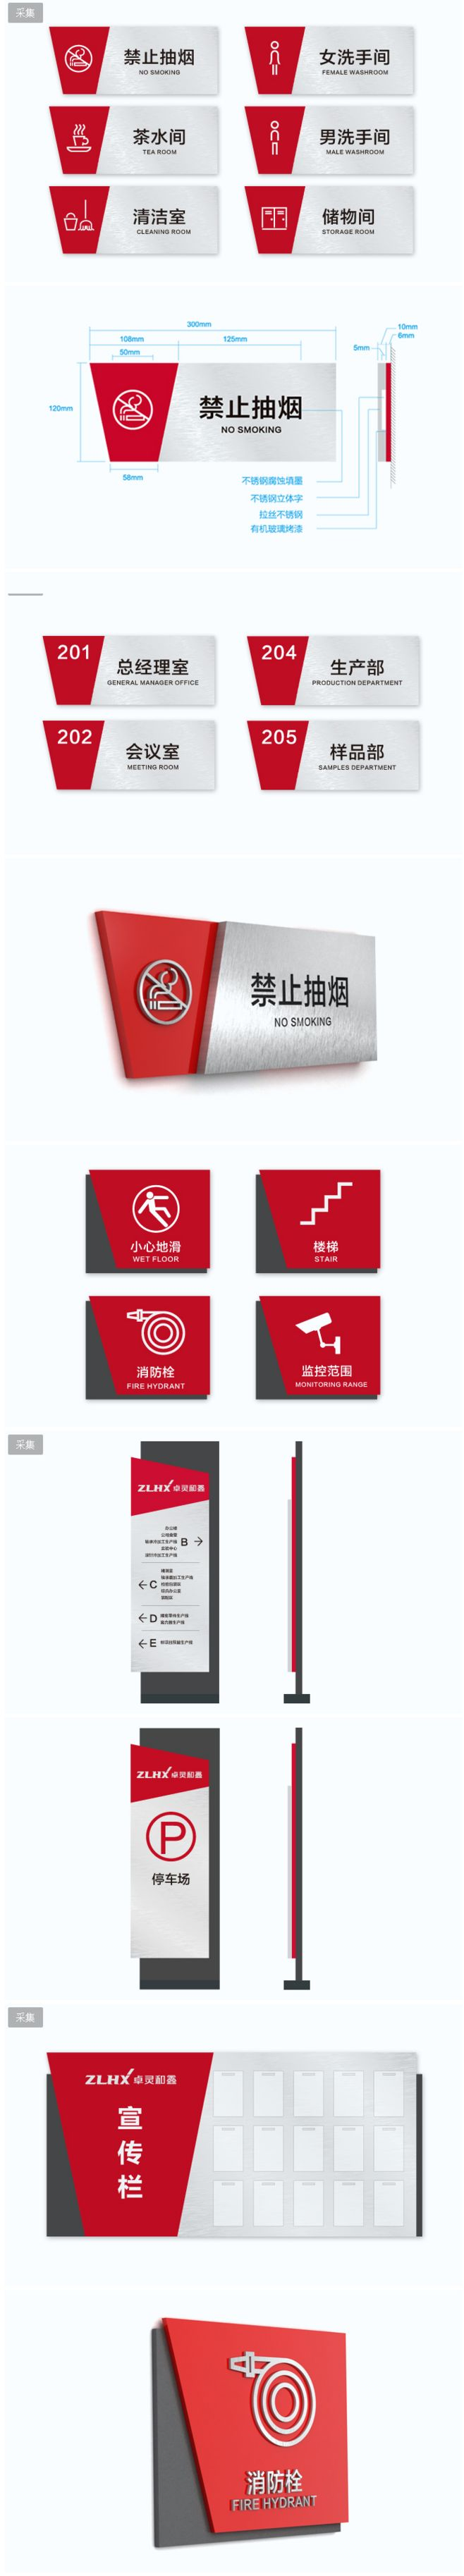 136 best Signage & Wayfinding images on Pinterest